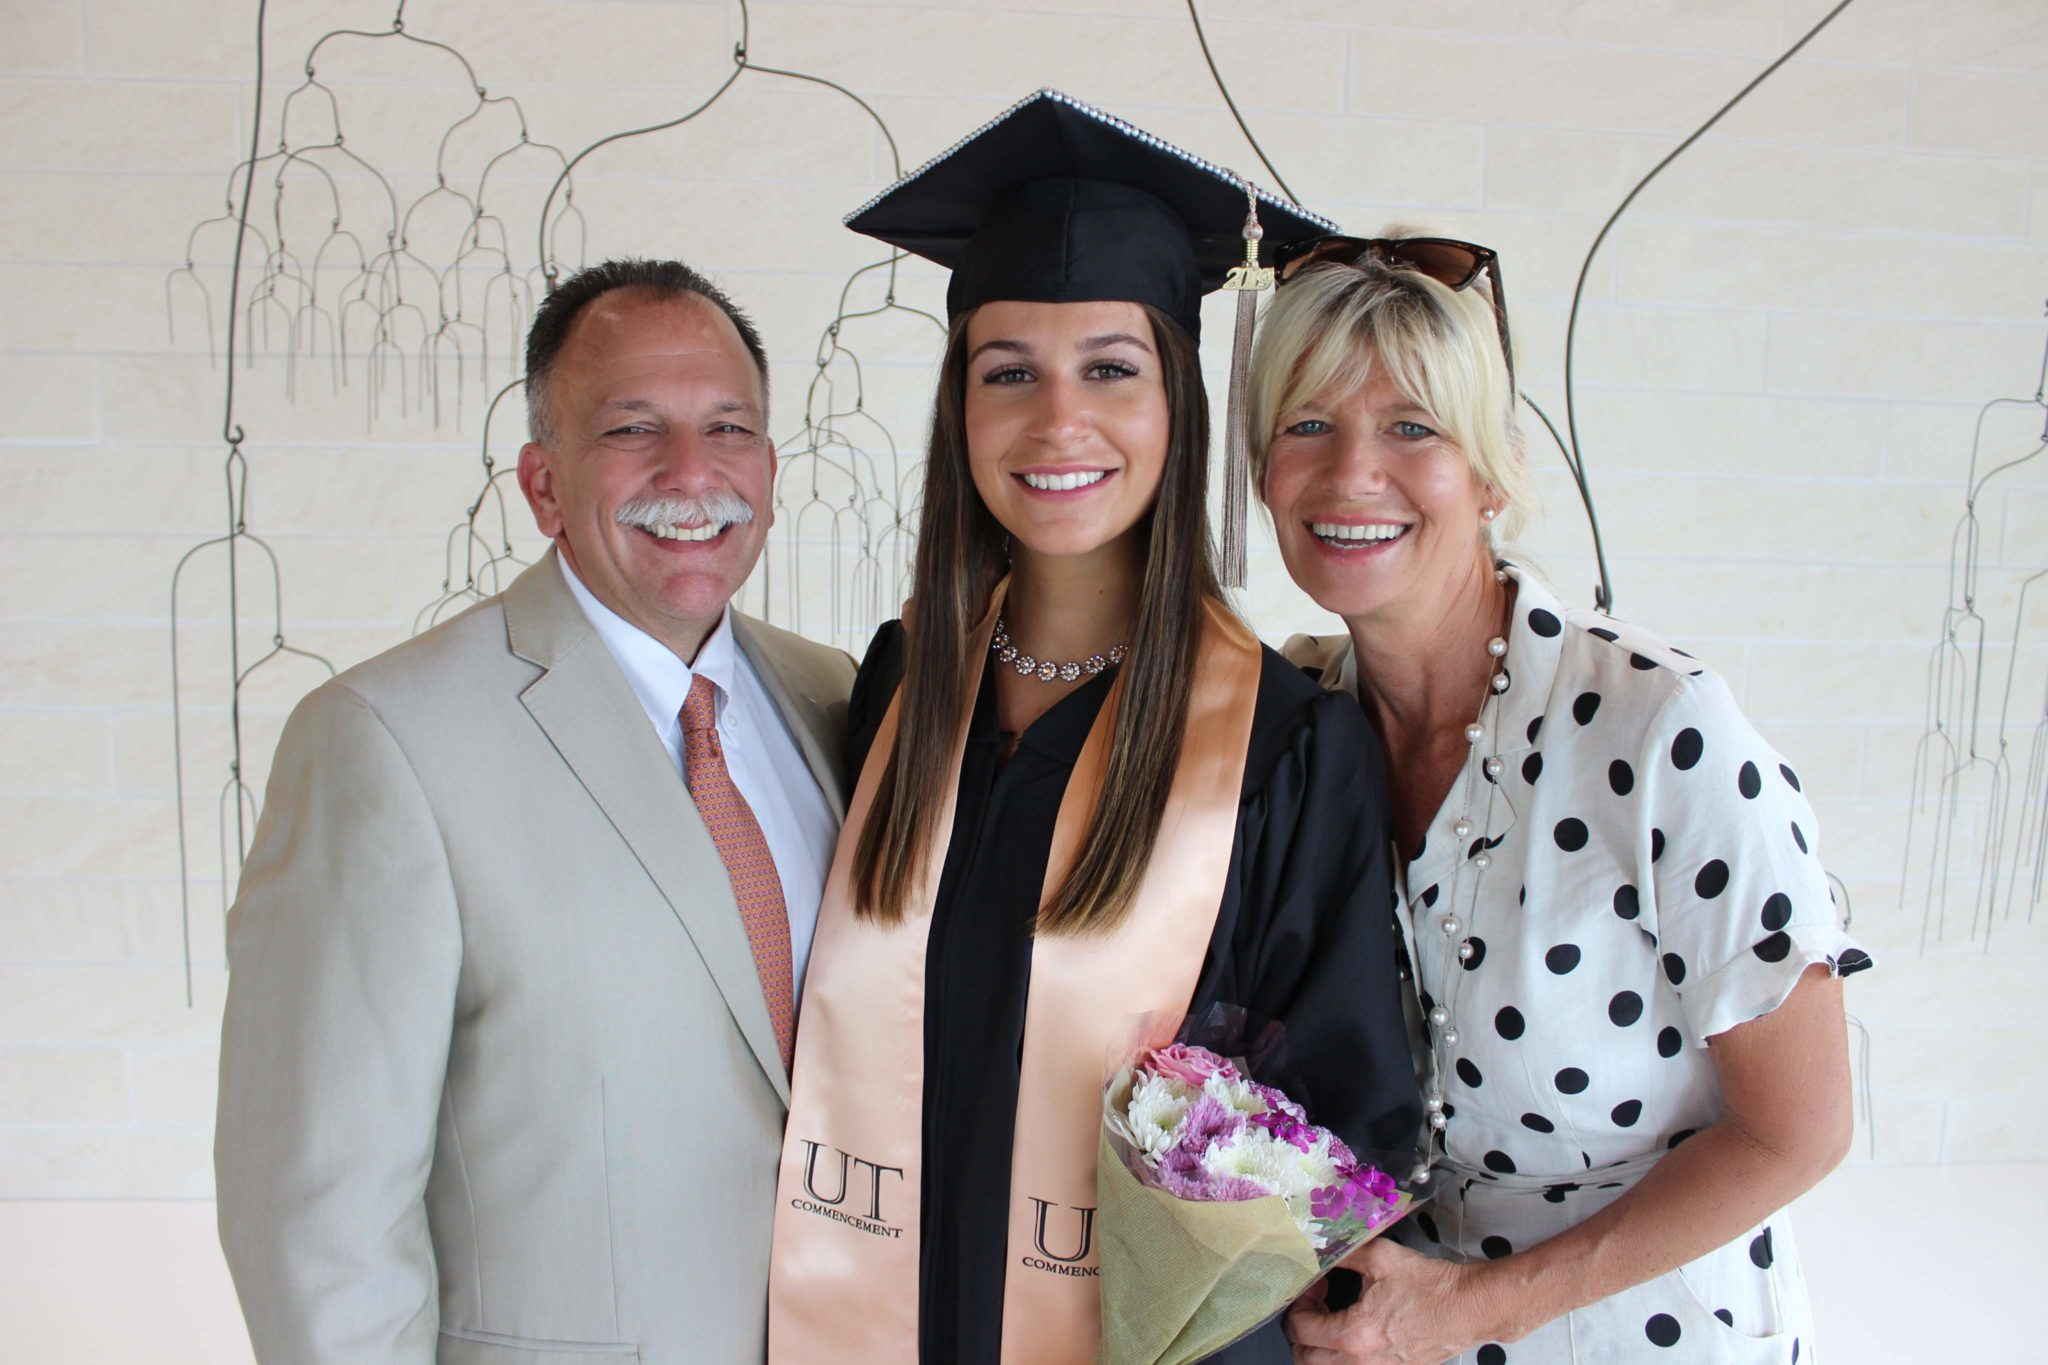 graduation photo of woman in cap and gown with parents on either side